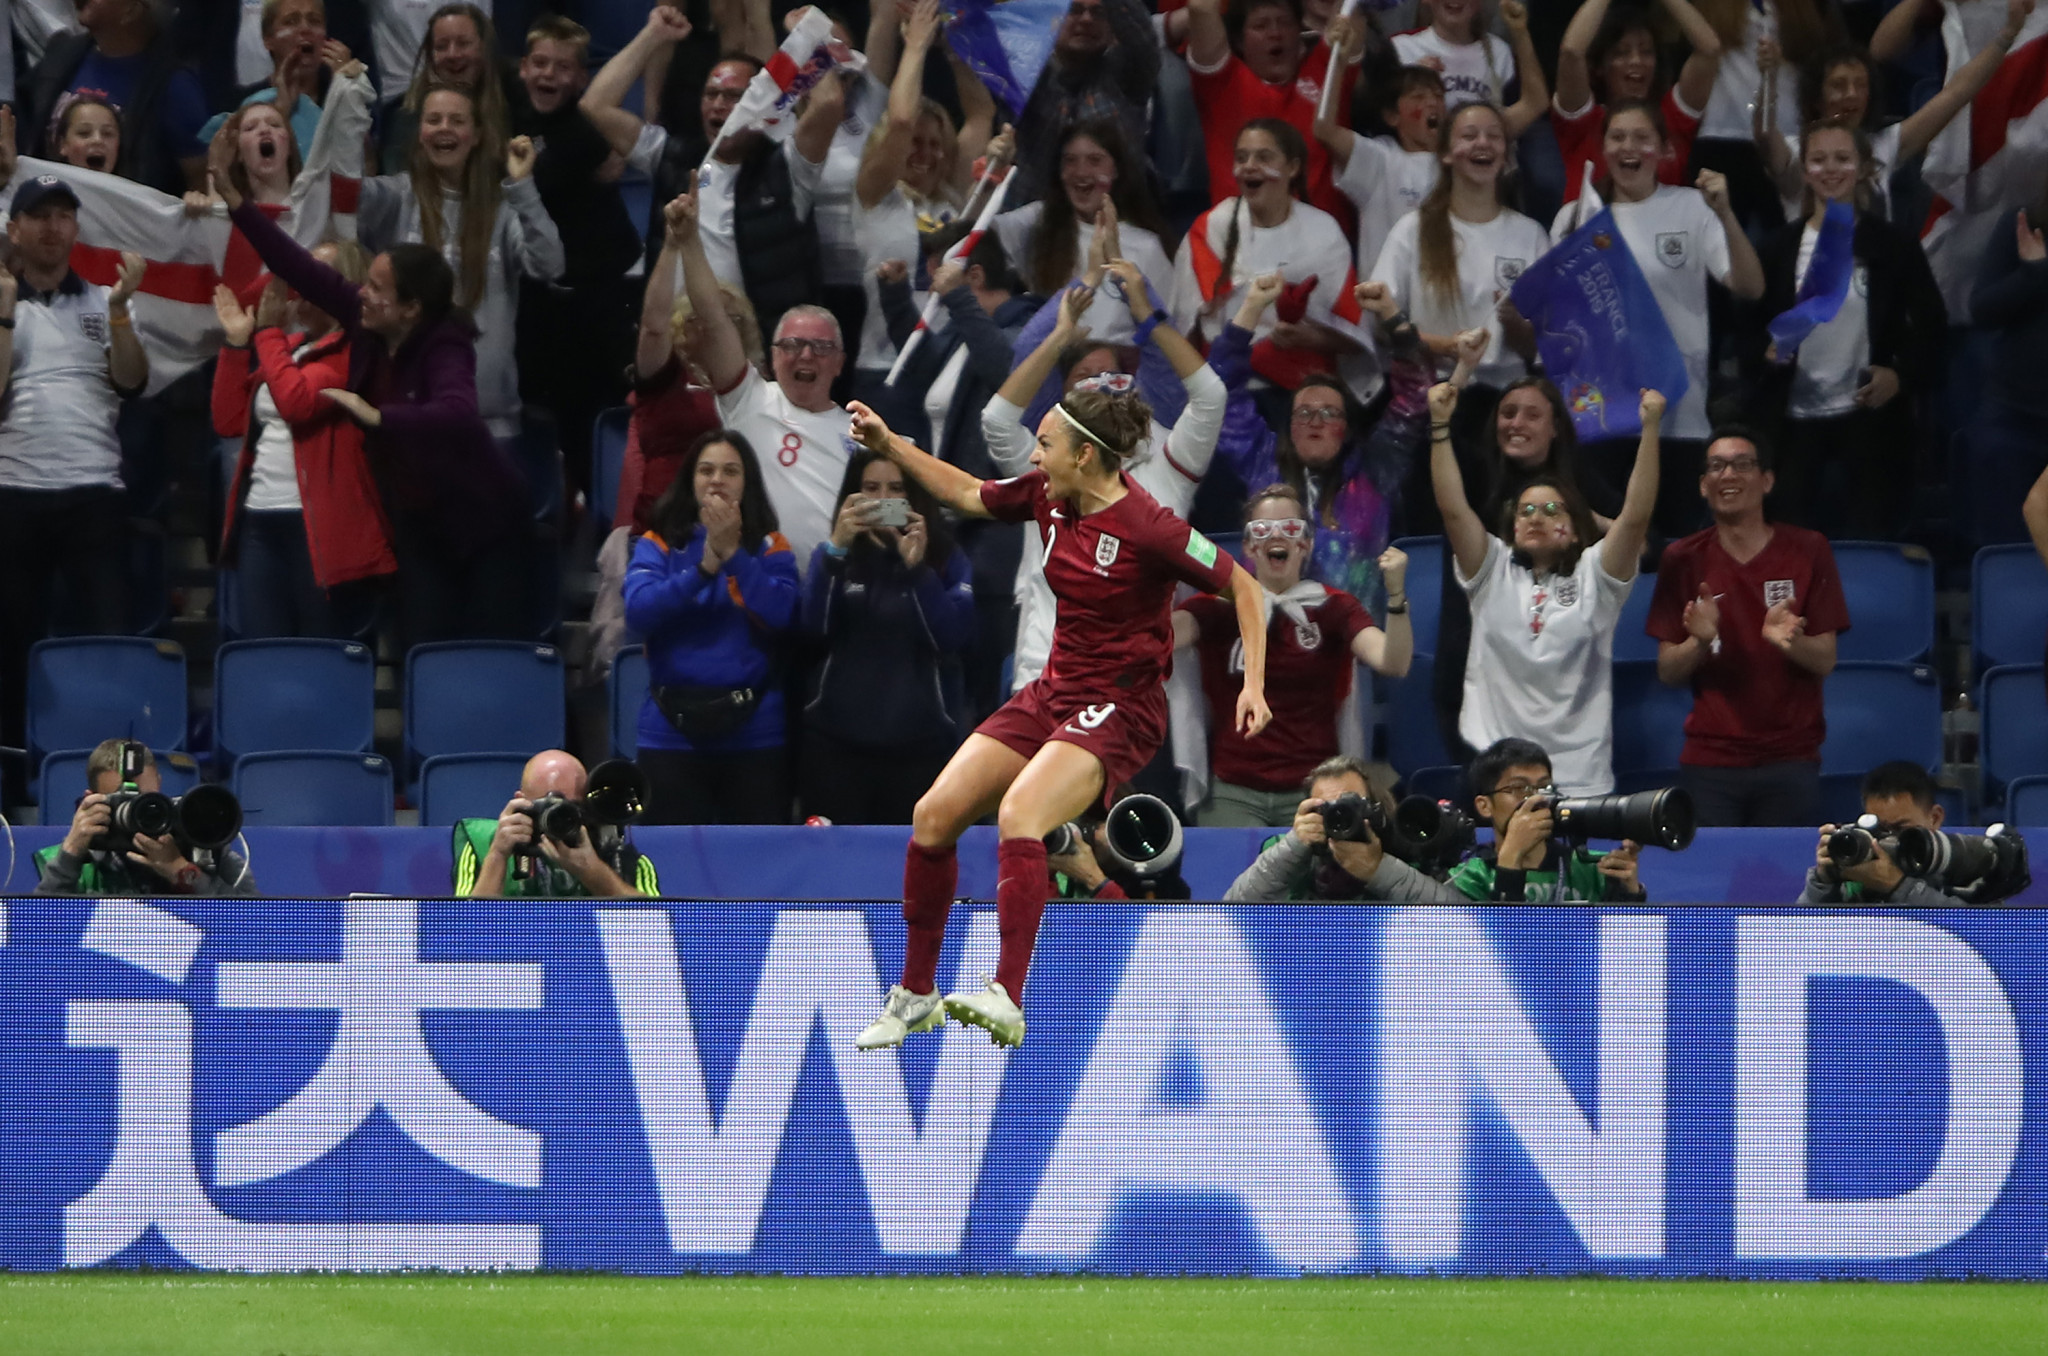 Jodie Taylor of England celebrates after breaking the deadlock in England's Group D match against Argentina ©Getty Images